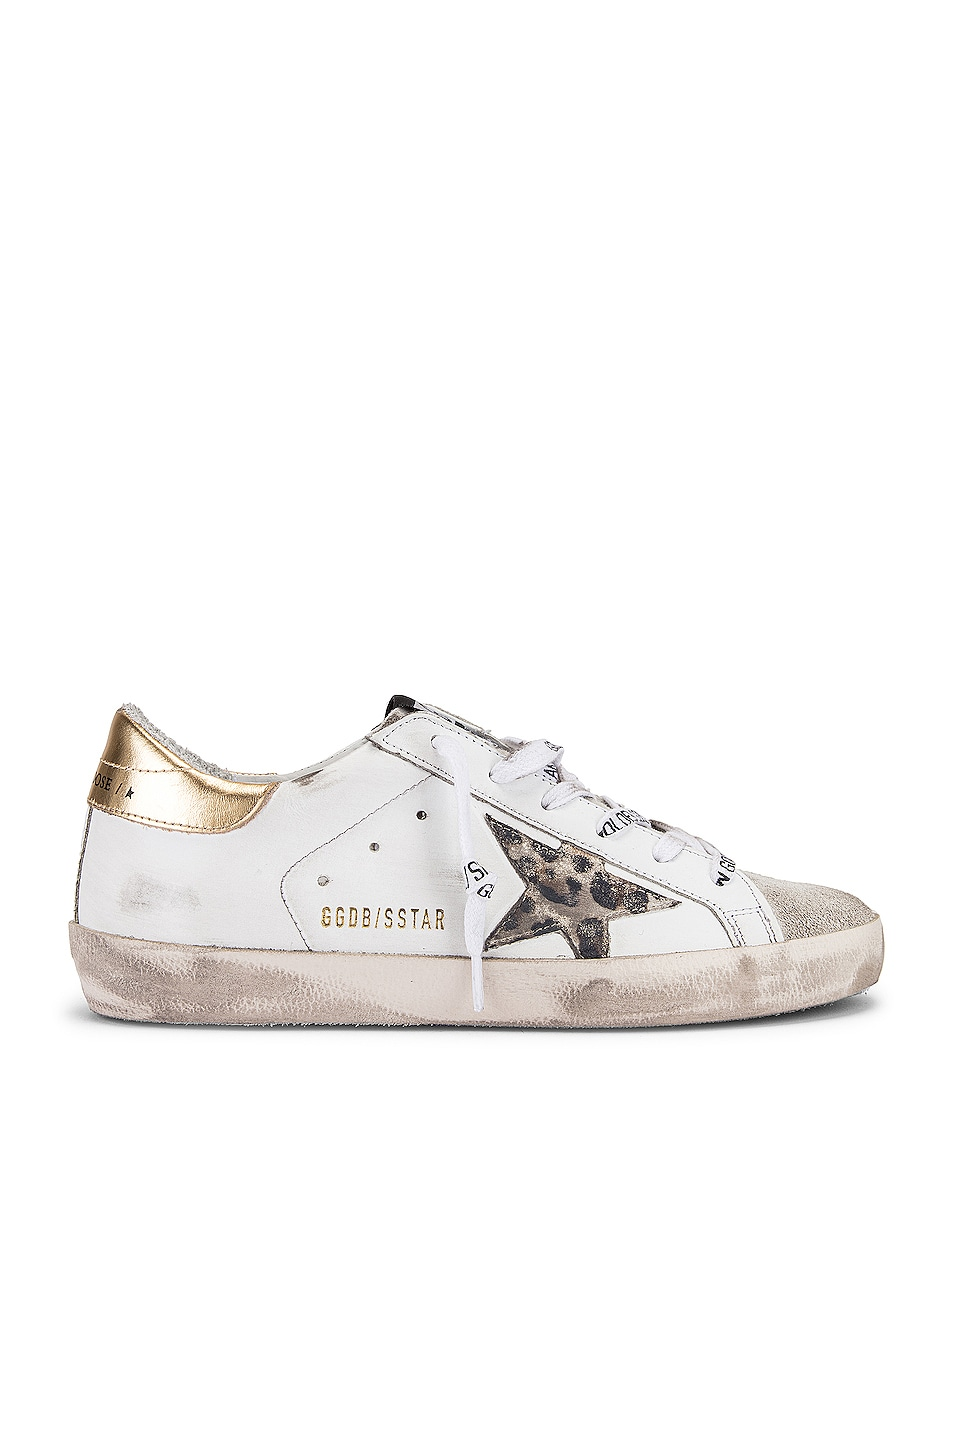 Image 1 of Golden Goose Superstar Sneaker in White, Spotted Star & Logo Lace